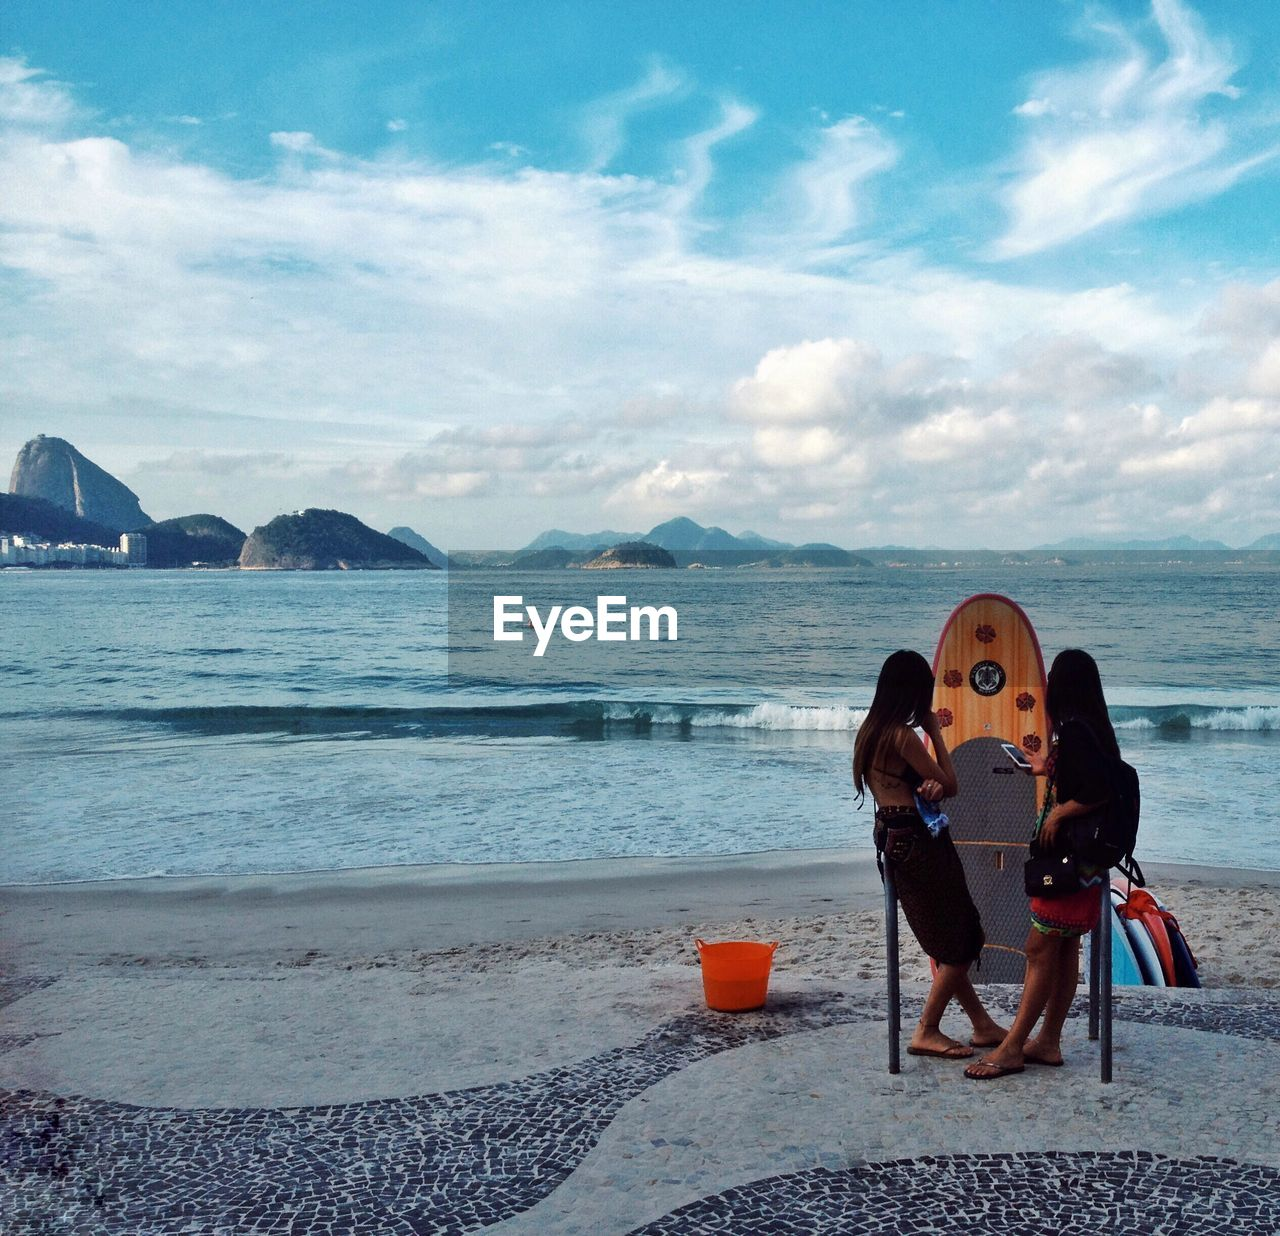 sky, sea, scenics, beach, nature, cloud - sky, mountain, water, real people, vacations, beauty in nature, tranquil scene, two people, full length, outdoors, sand, leisure activity, tranquility, day, young women, women, young adult, people